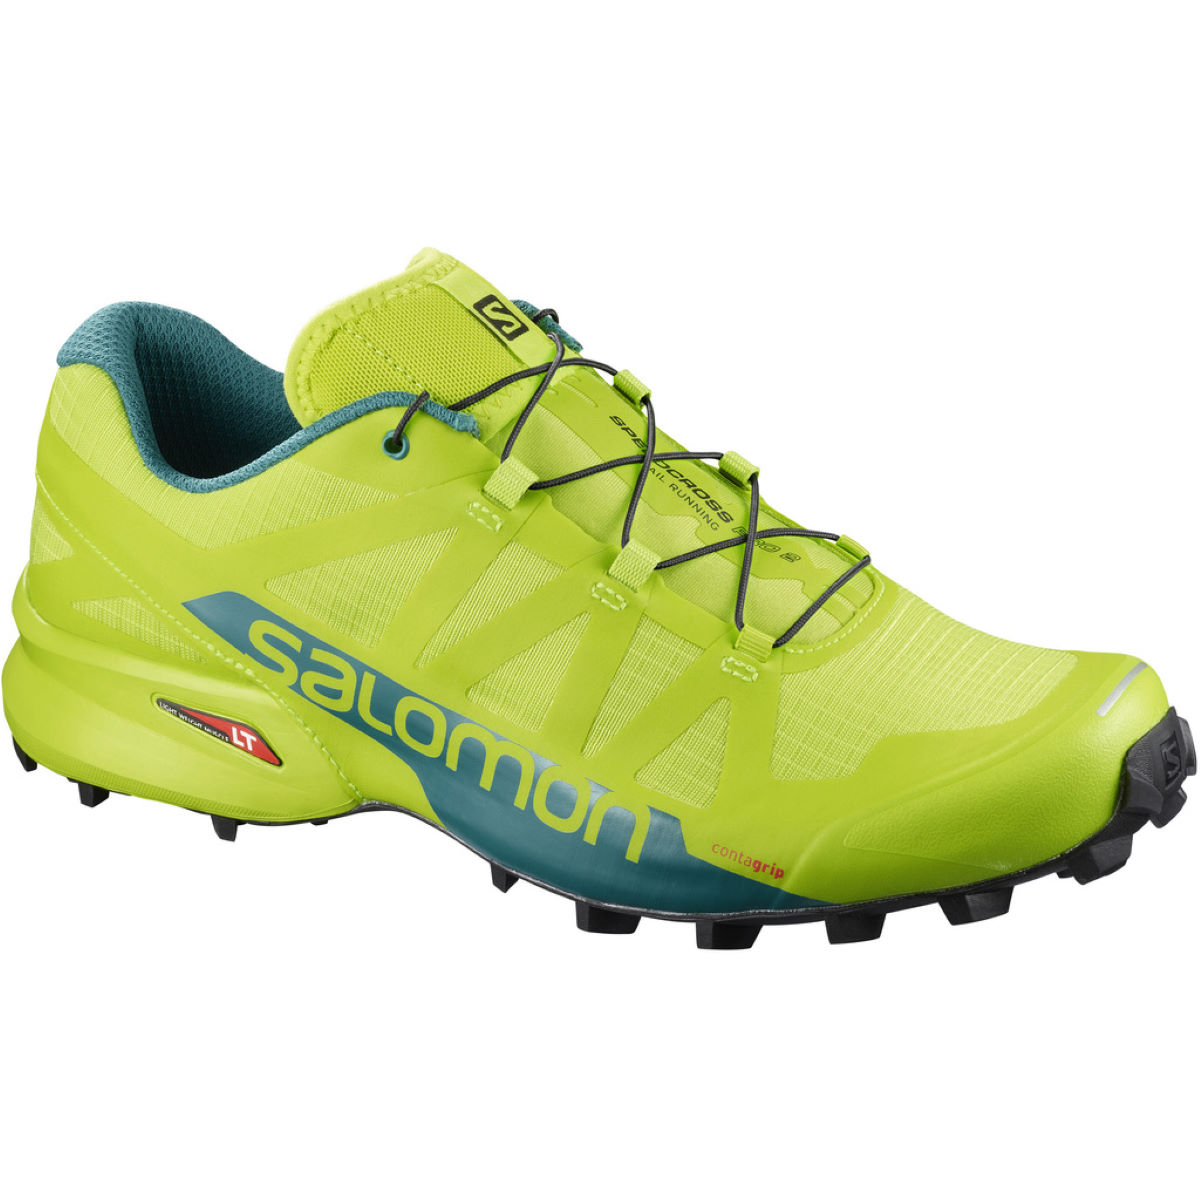 Zapatillas Salomon Speedcross Pro 2 - Zapatillas de trail